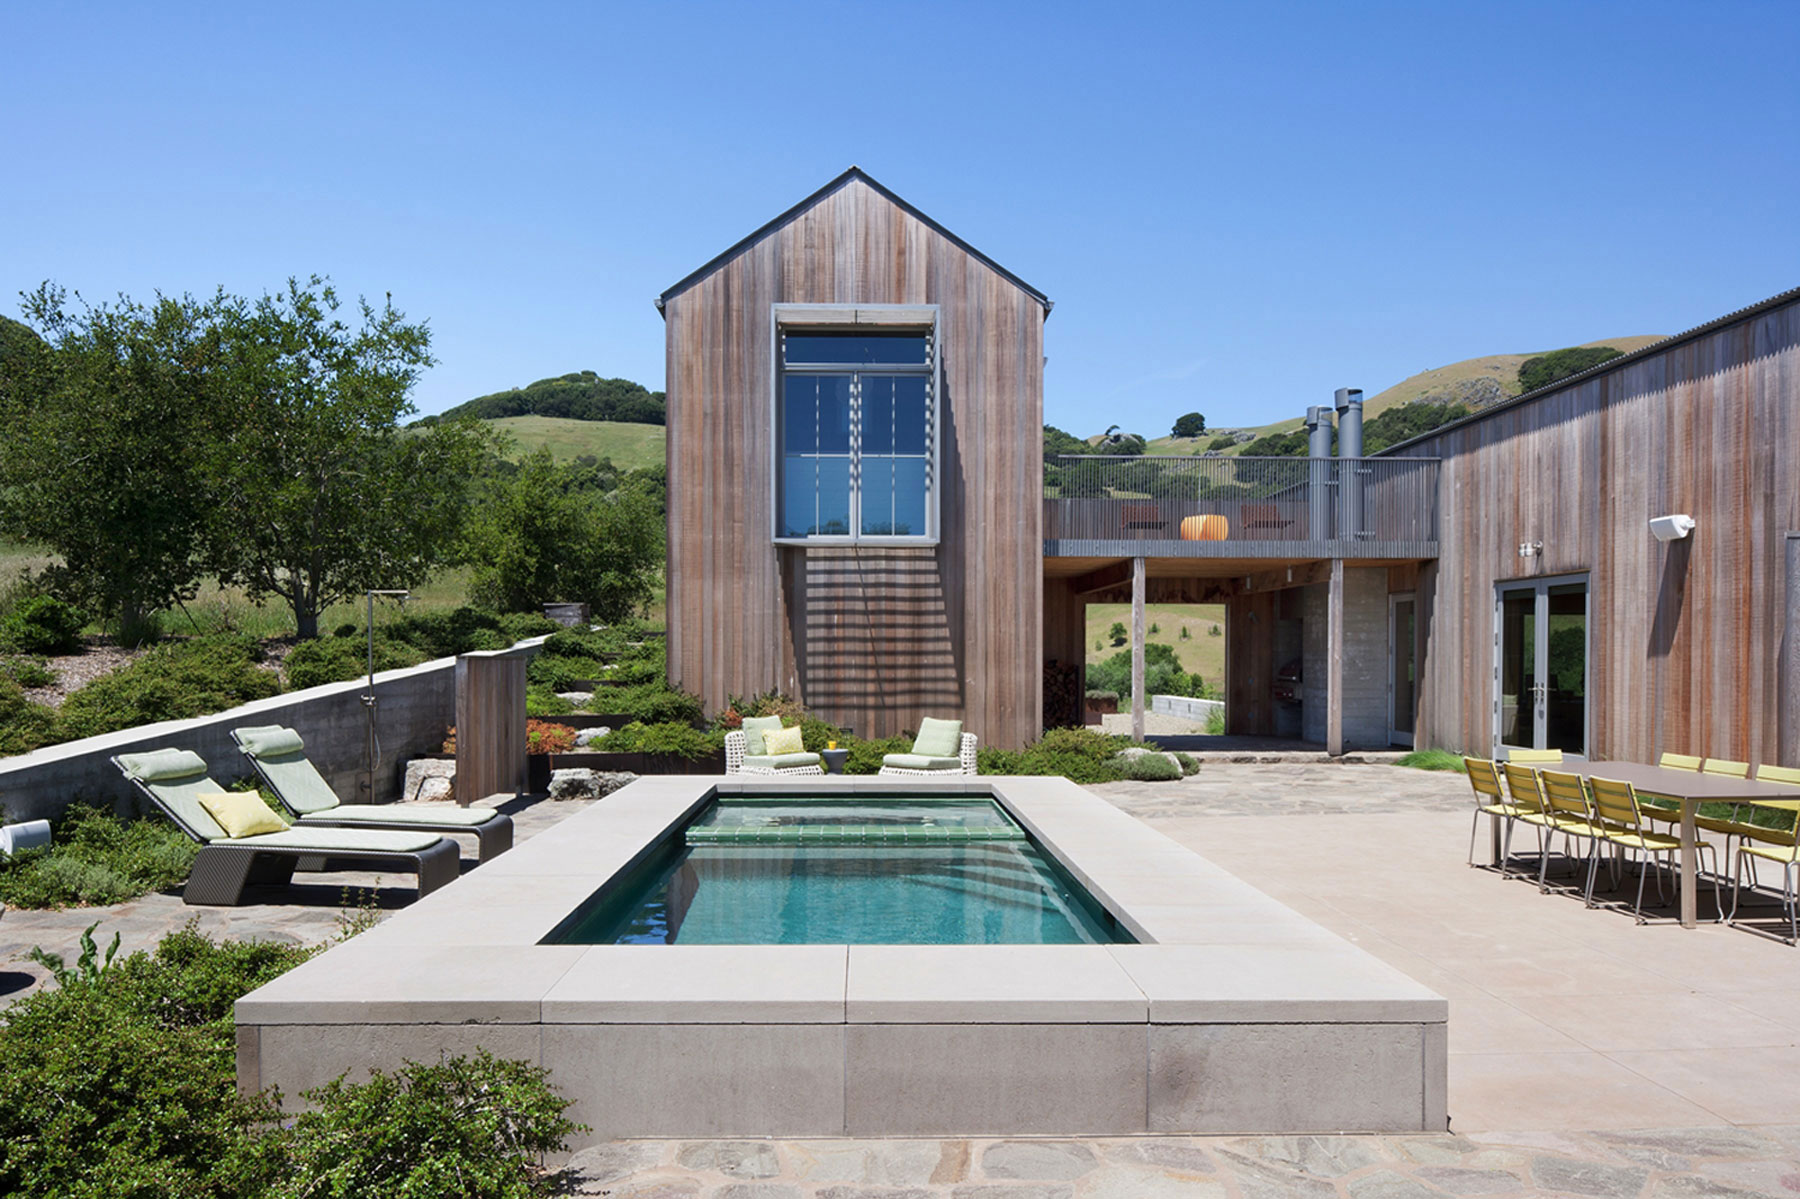 Modern ranch house designed by Turnbull-Griffin-Haesloop-Architects-3 Modern ranch house designed by Turnbull Griffin Haesloop Architects